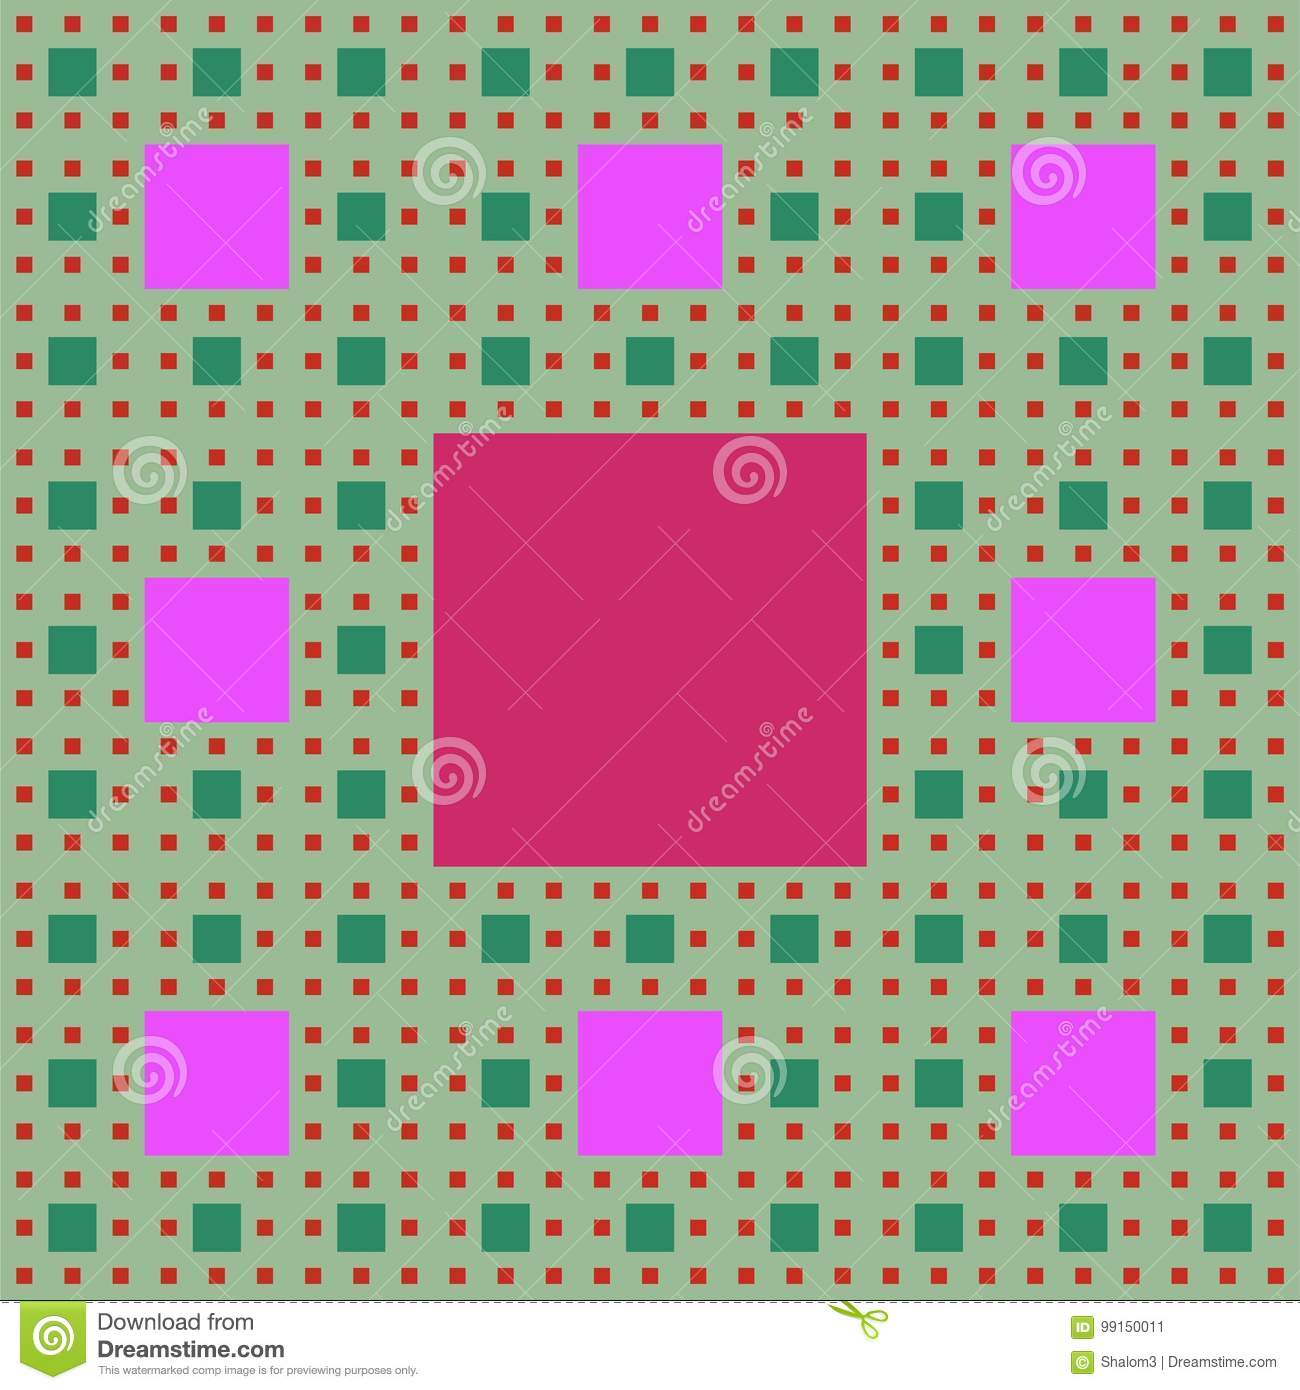 Sierpinski carpet patterns in fractal style, multicolored background in green, purple and red colors.